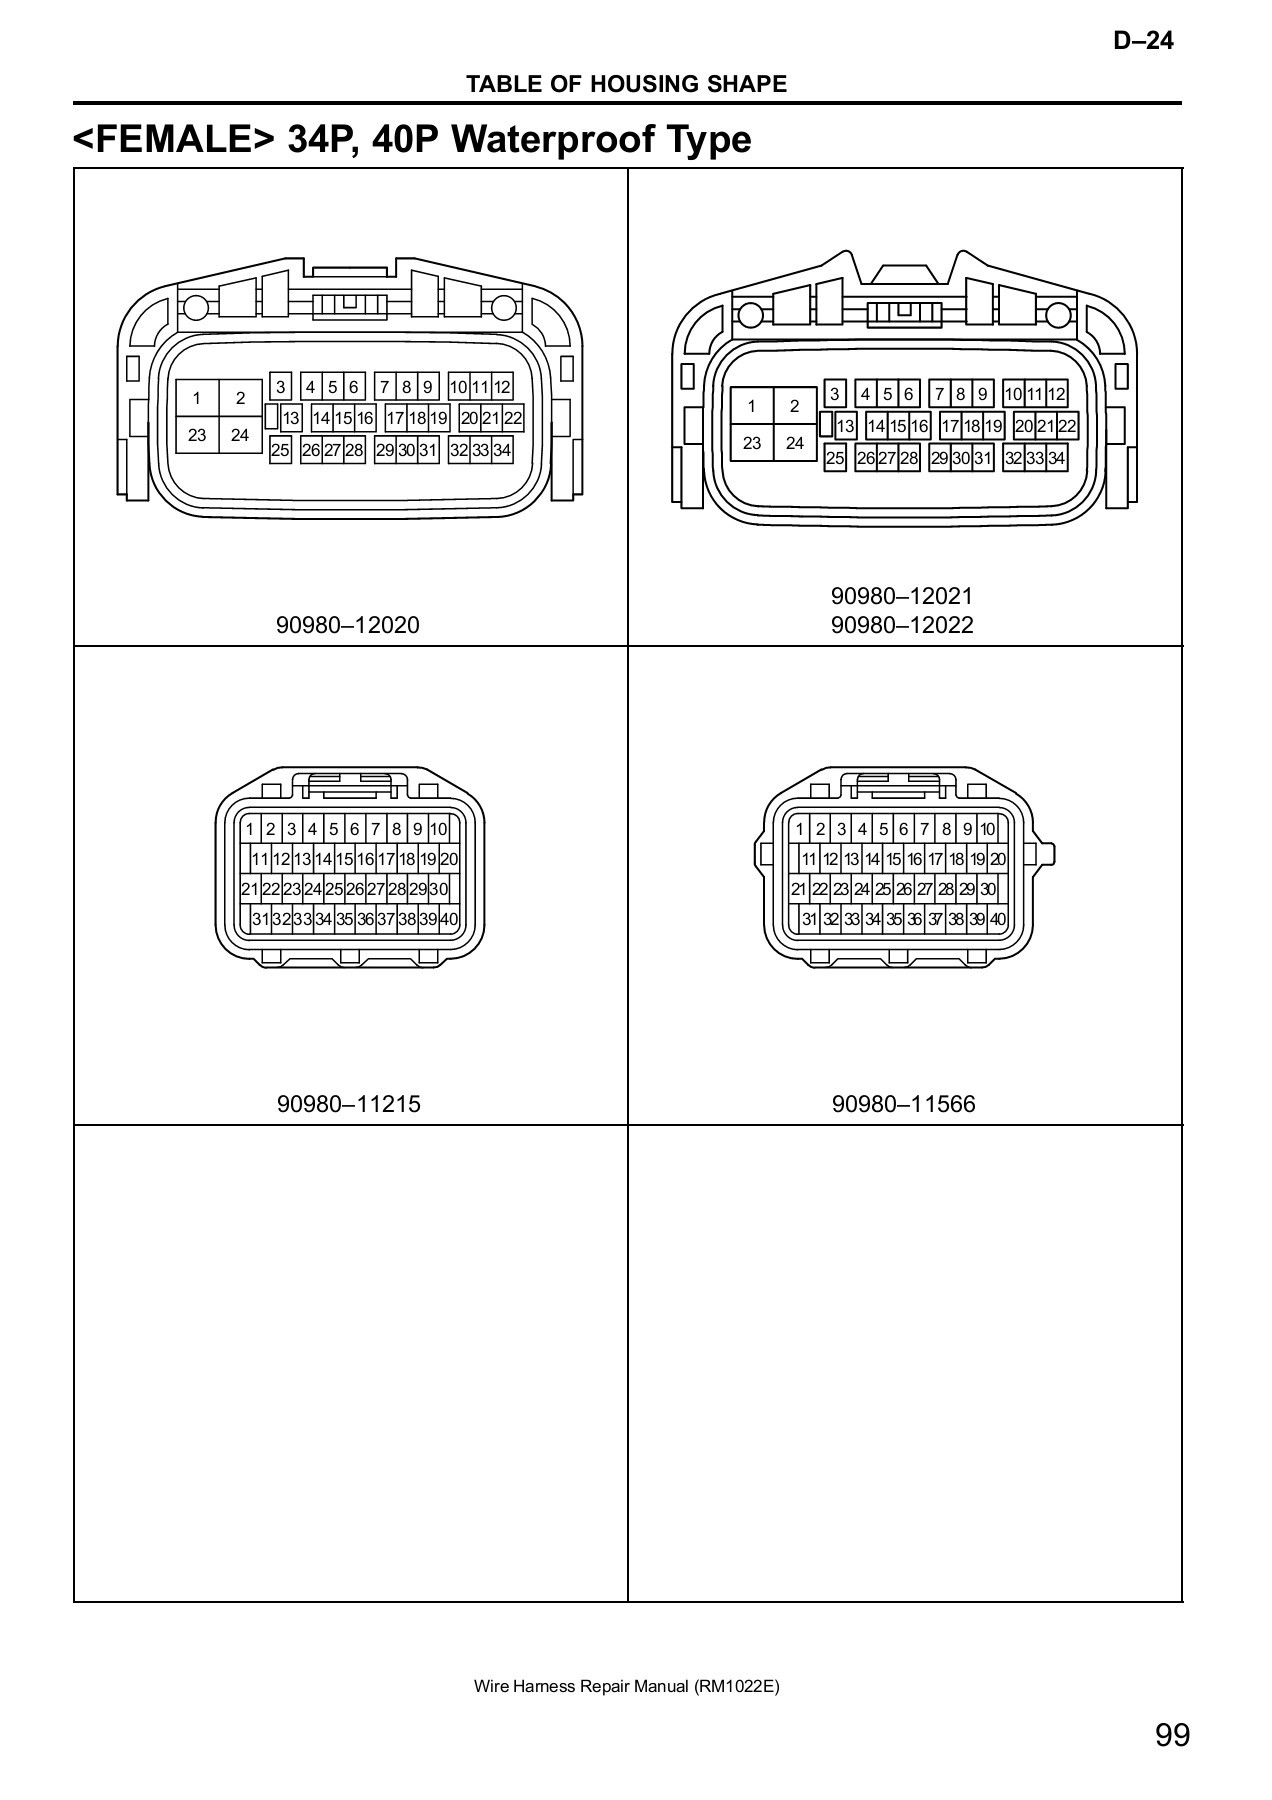 toyota wiring repair manual pdfdrive com pages 101 150 text version fliphtml5 [ 1272 x 1800 Pixel ]